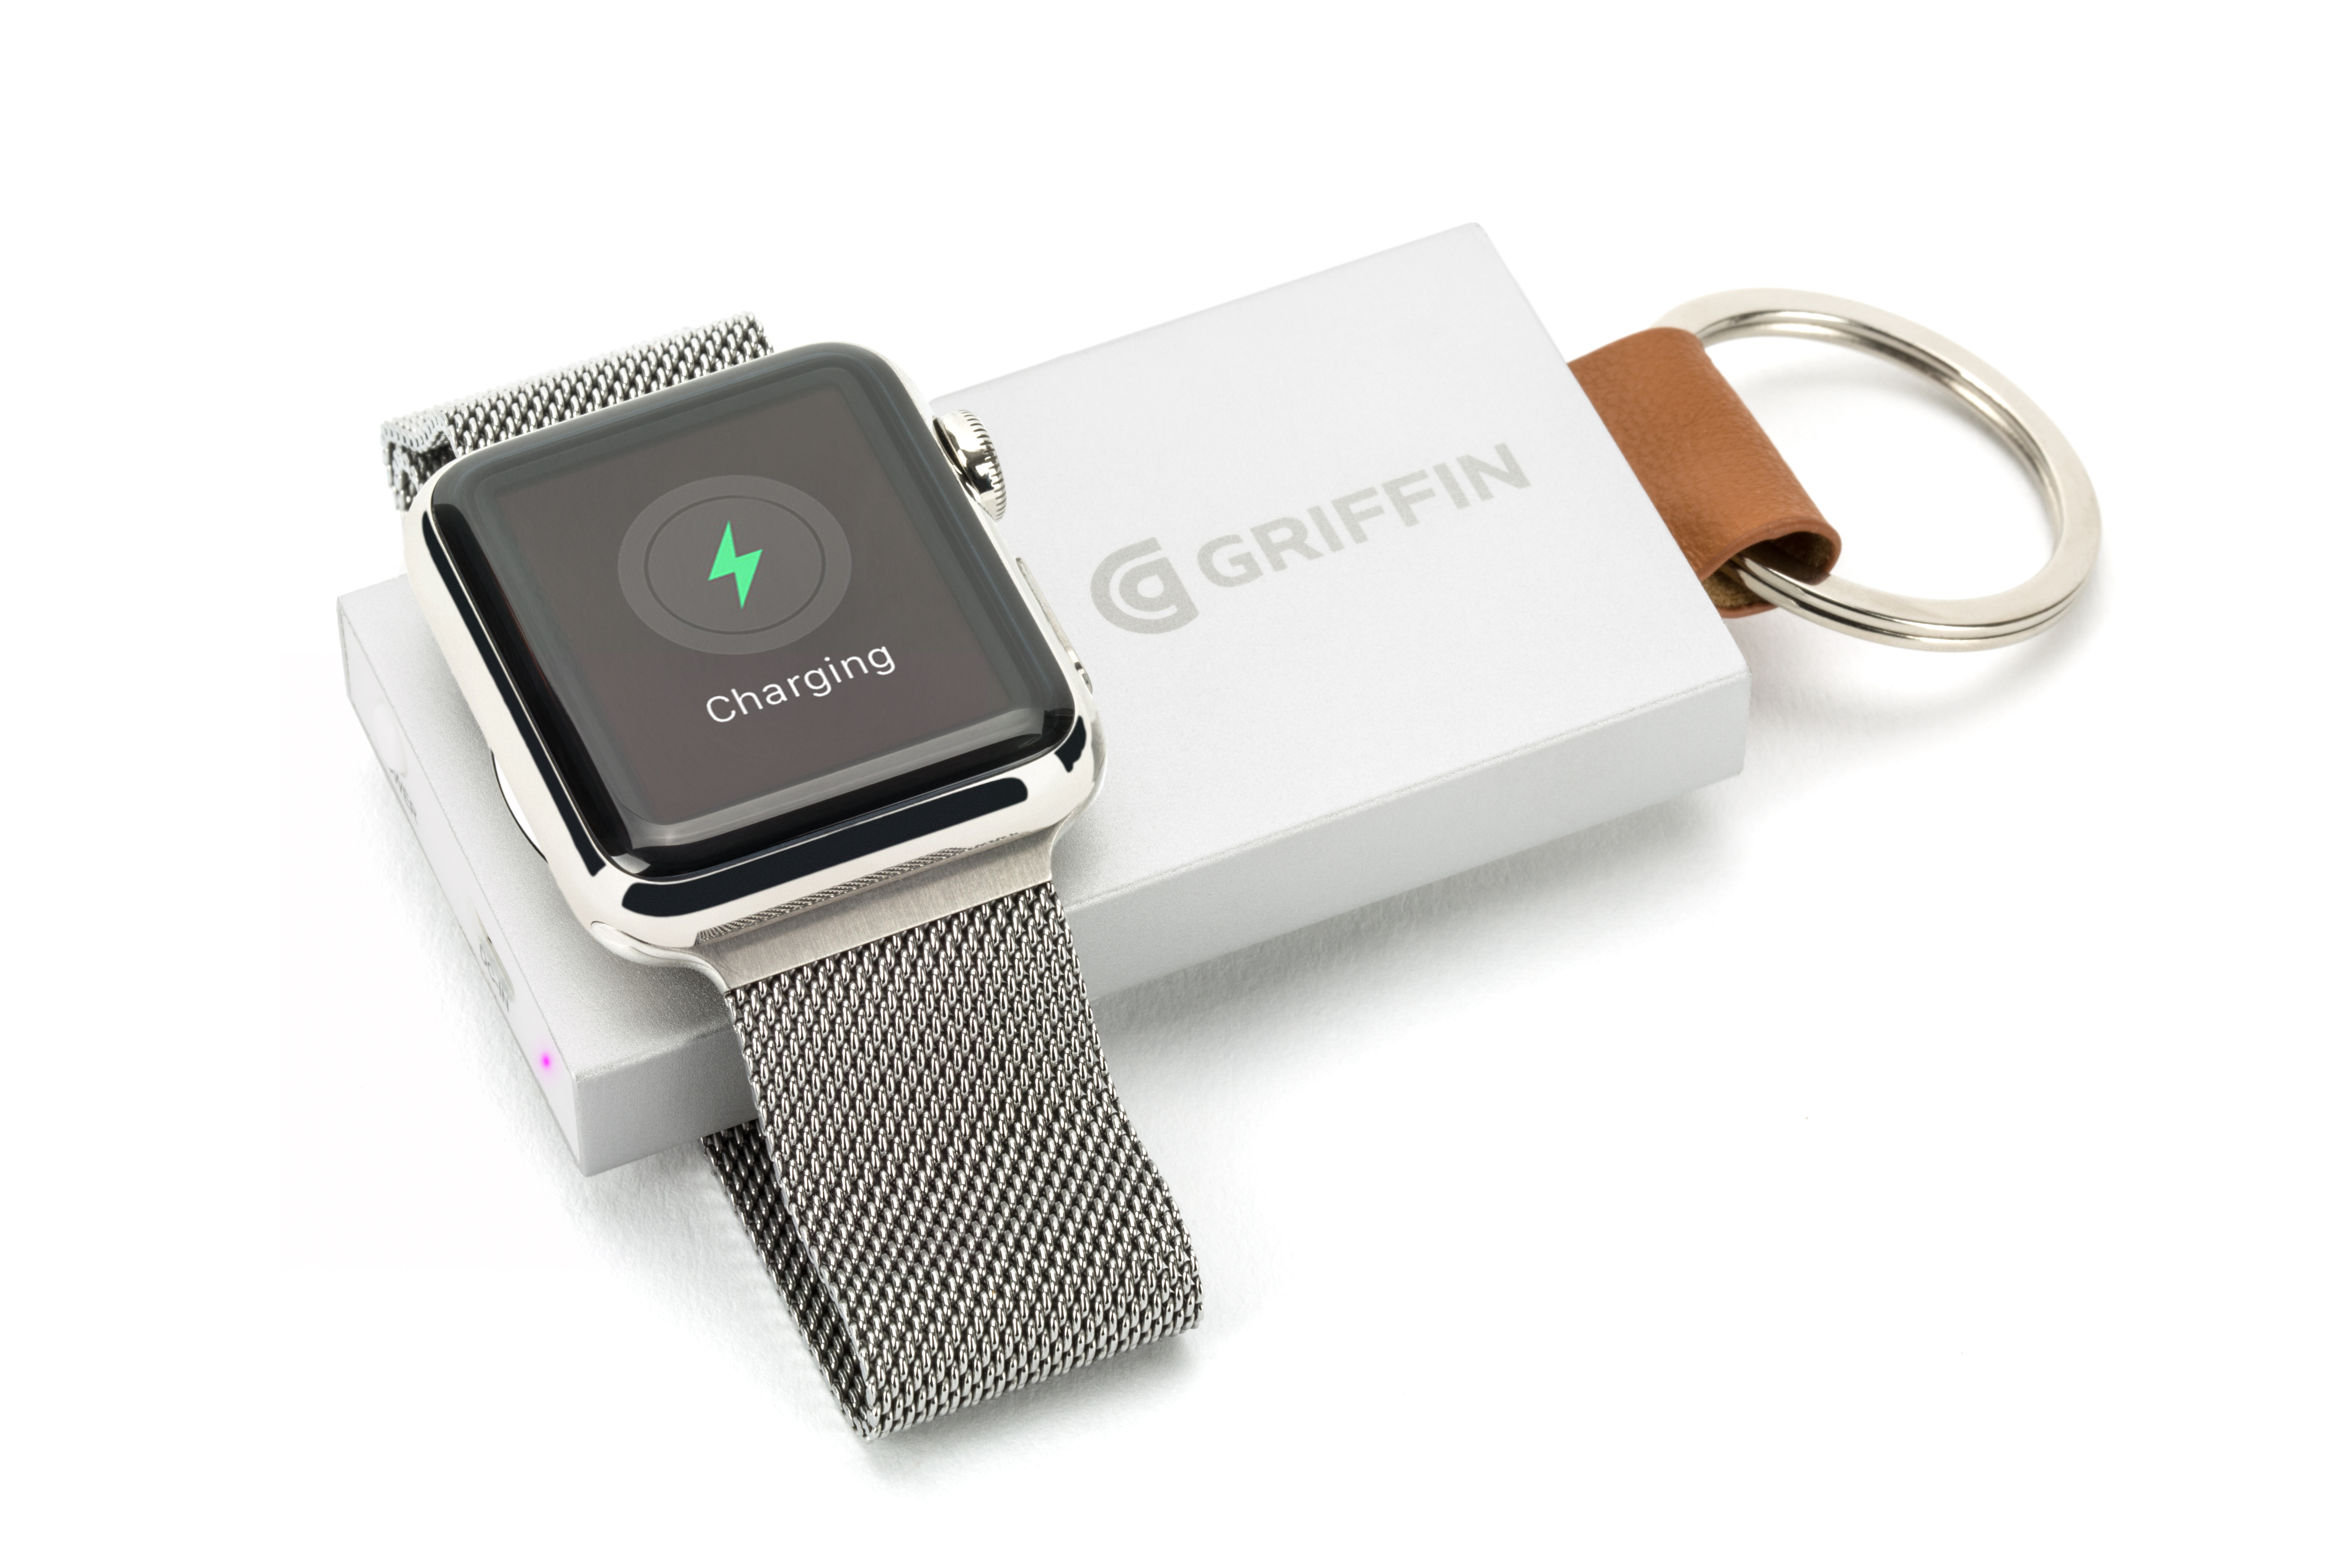 Griffin S Travel Power Bank I